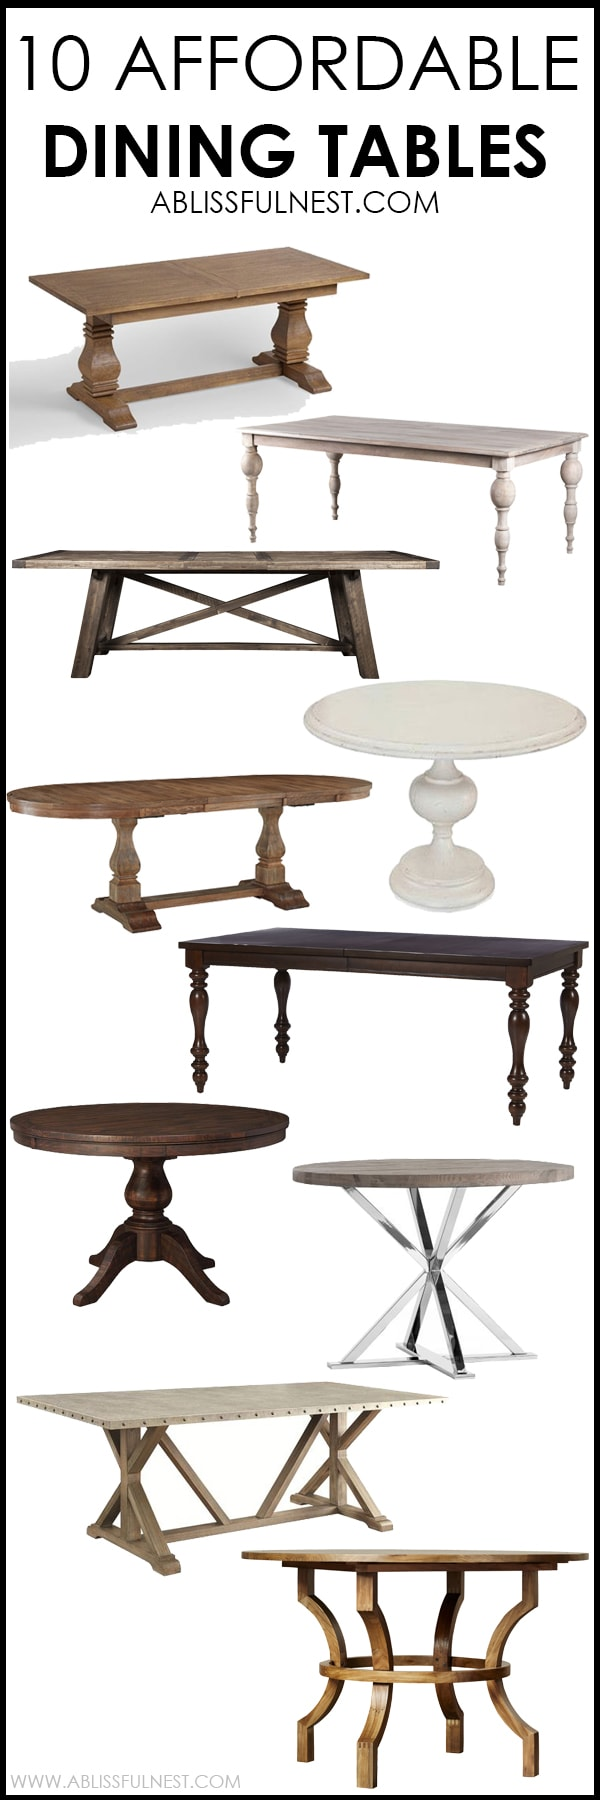 I cannot believe all these dining tables are so affordable! This is such a great round up of dining tables from farmhouse style to a more transitional look. More on http://ablissfulnest.com/ #diningroom #diningtable #designtips #homedecor #diningroomideas